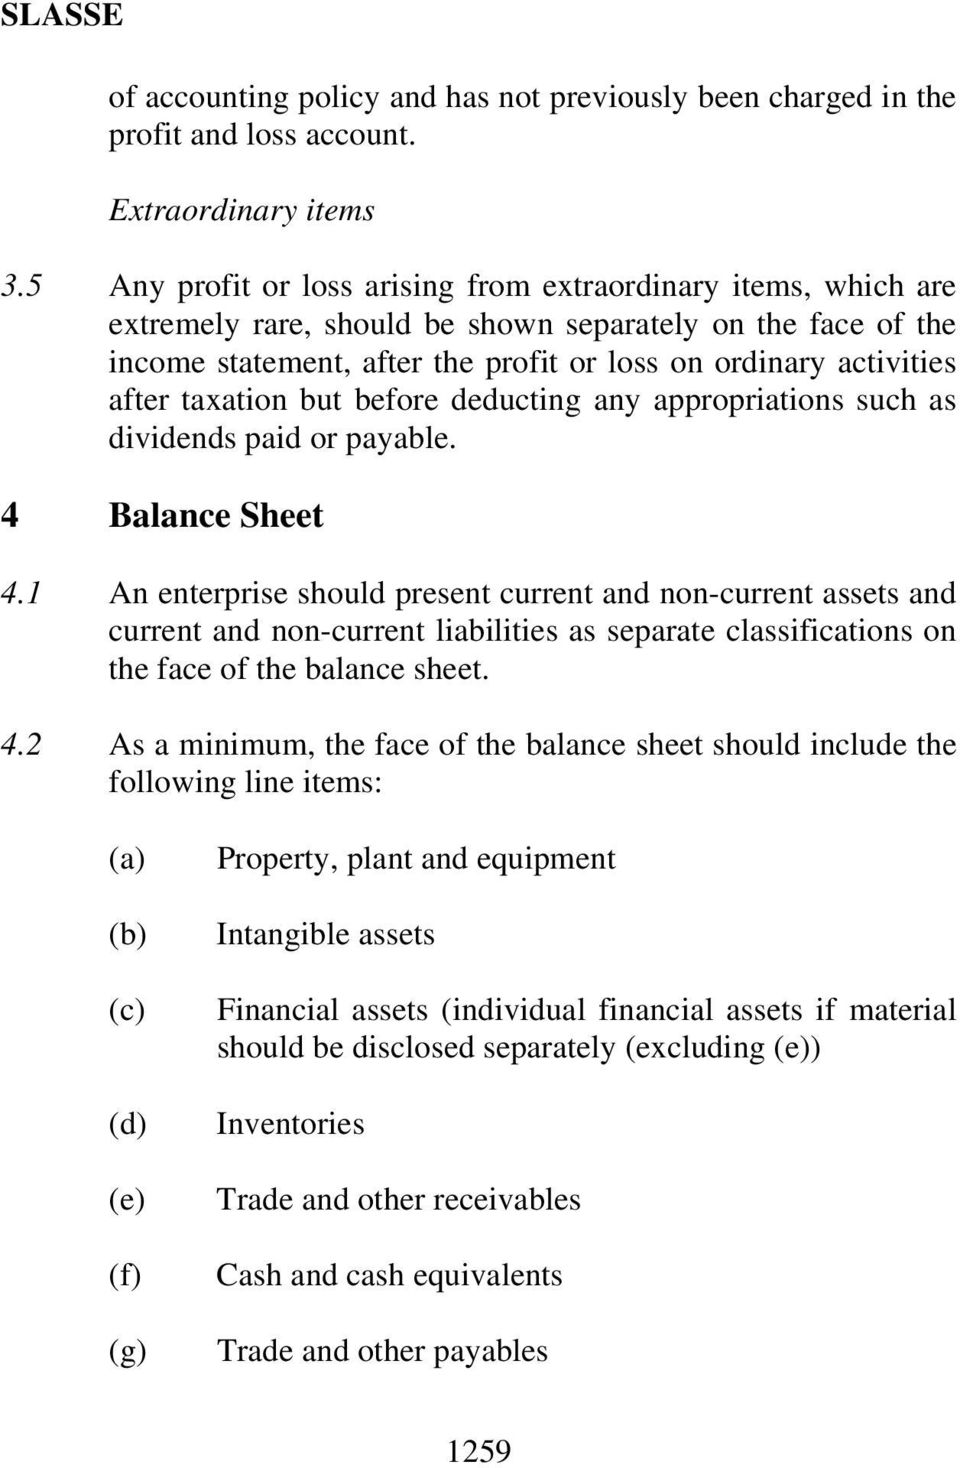 taxation but before deducting any appropriations such as dividends paid or payable. 4 Balance Sheet 4.